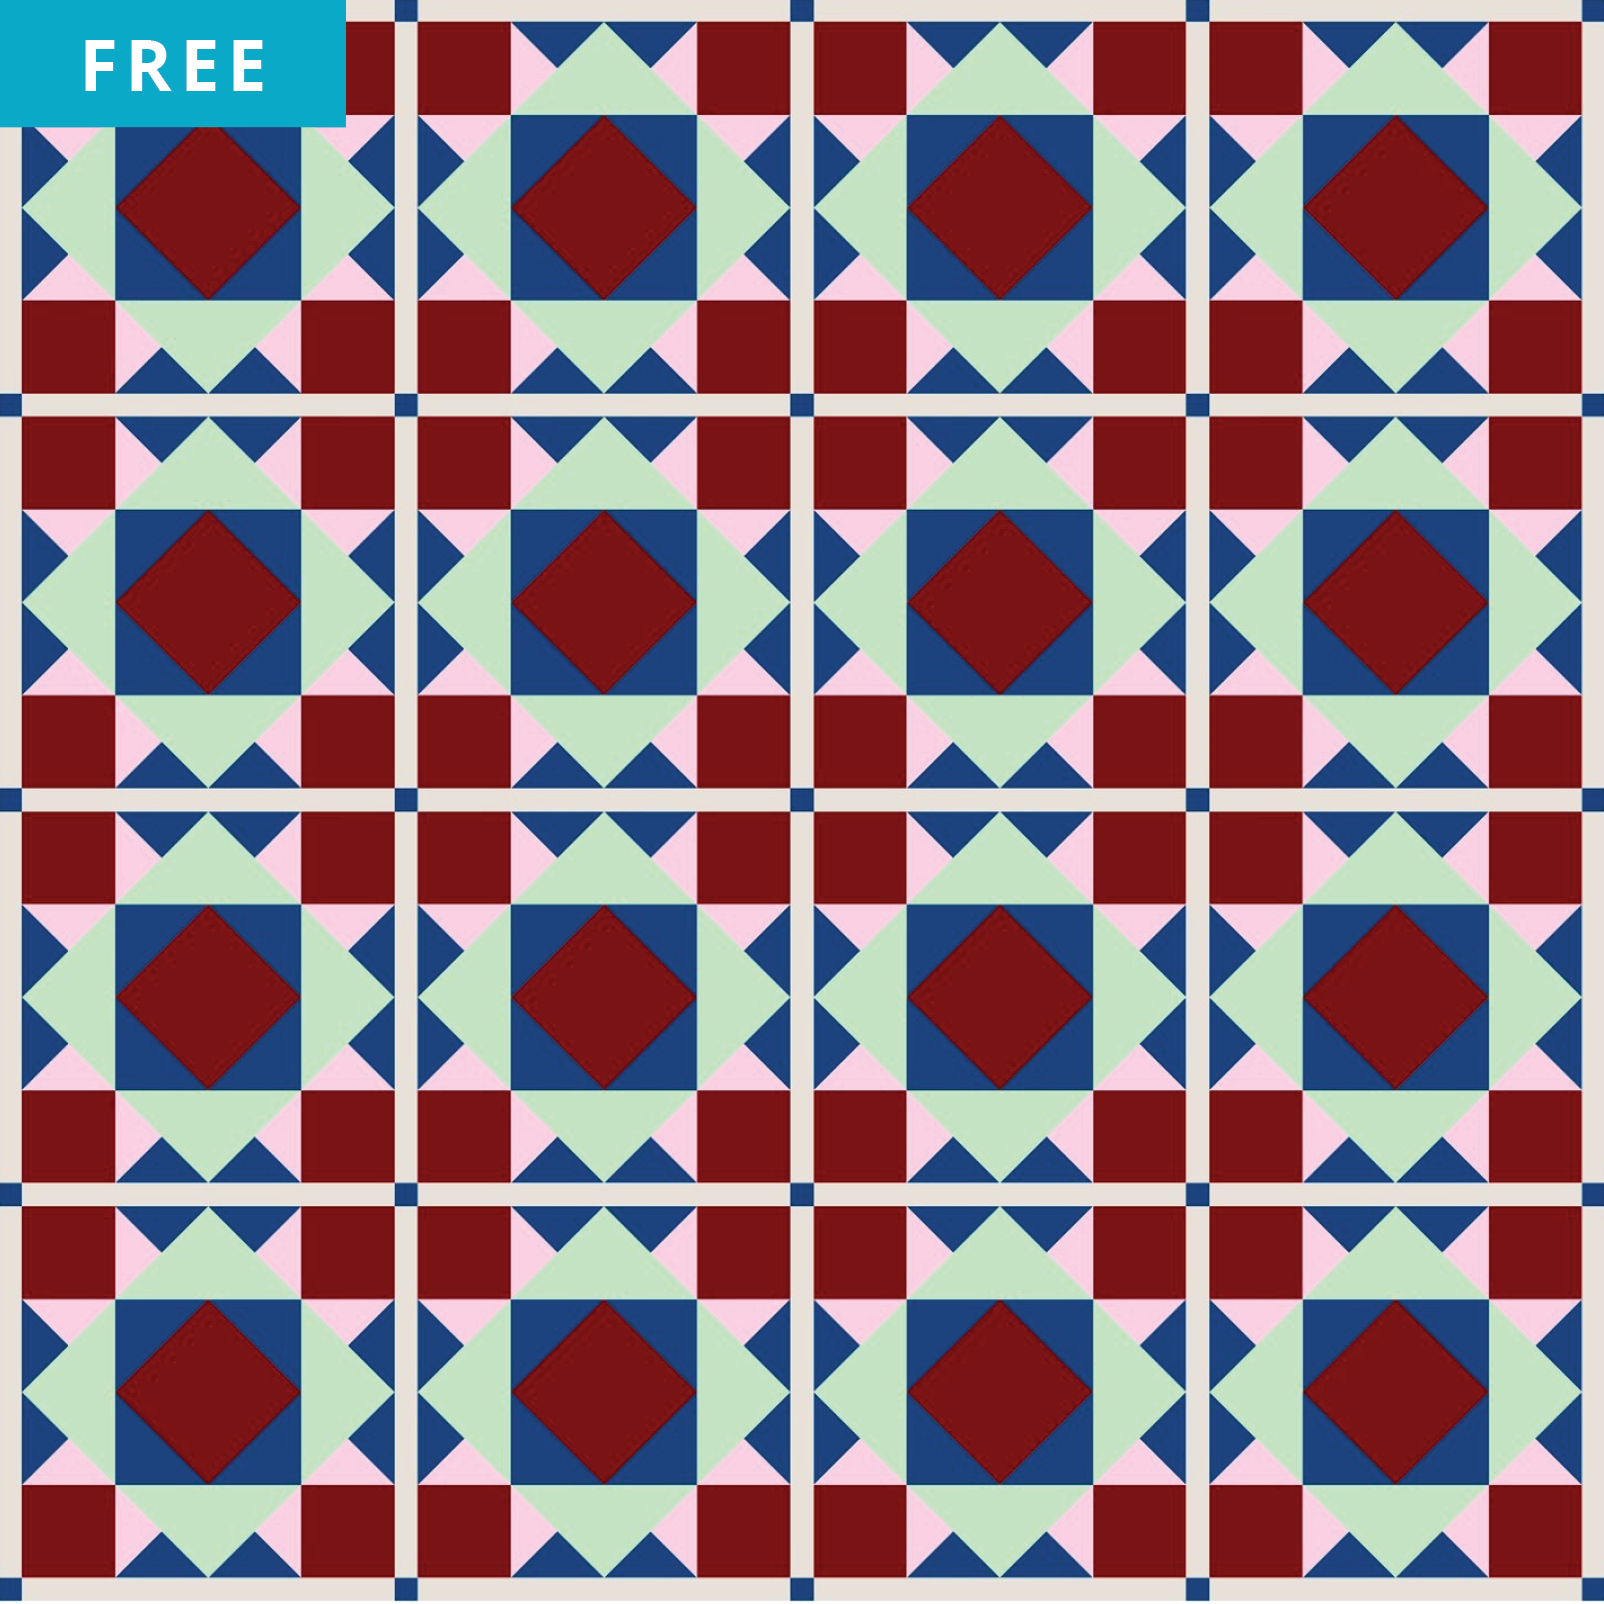 Free Quilt Pattern - Diamond in a Square